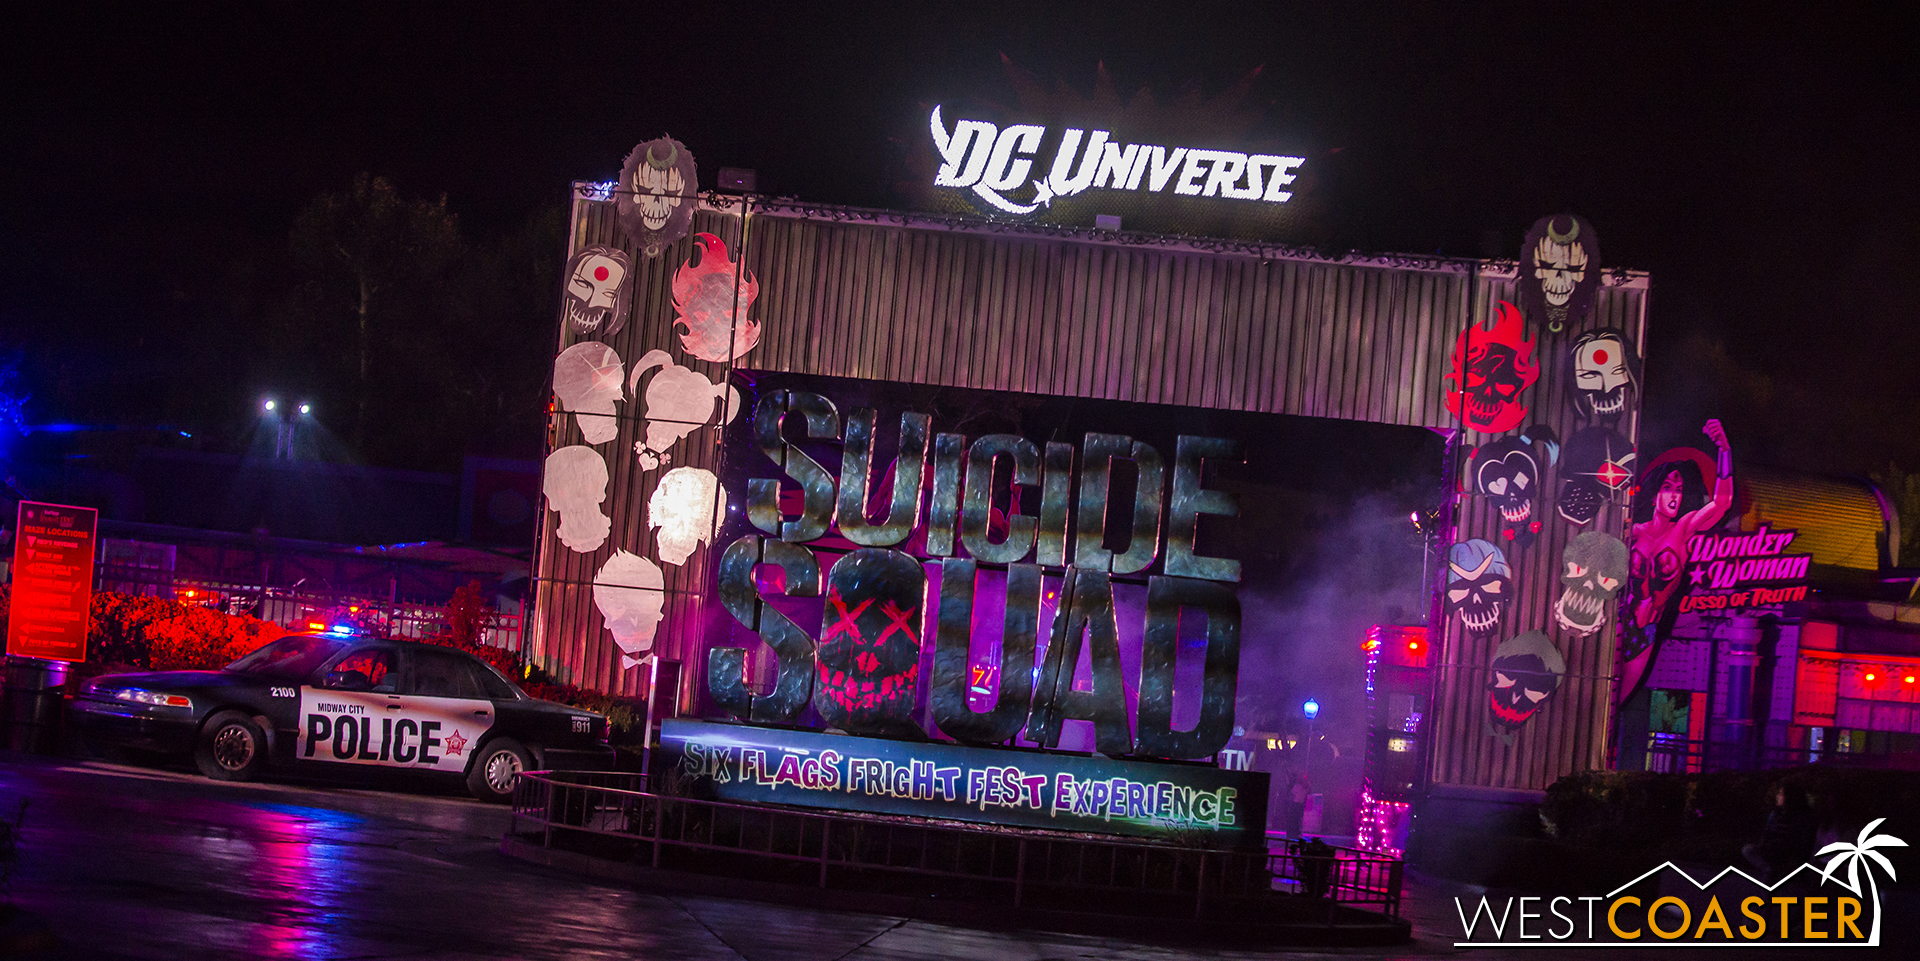 Exclusive for this year's Fright Fest is the Suicide Squad scare zone and experience.